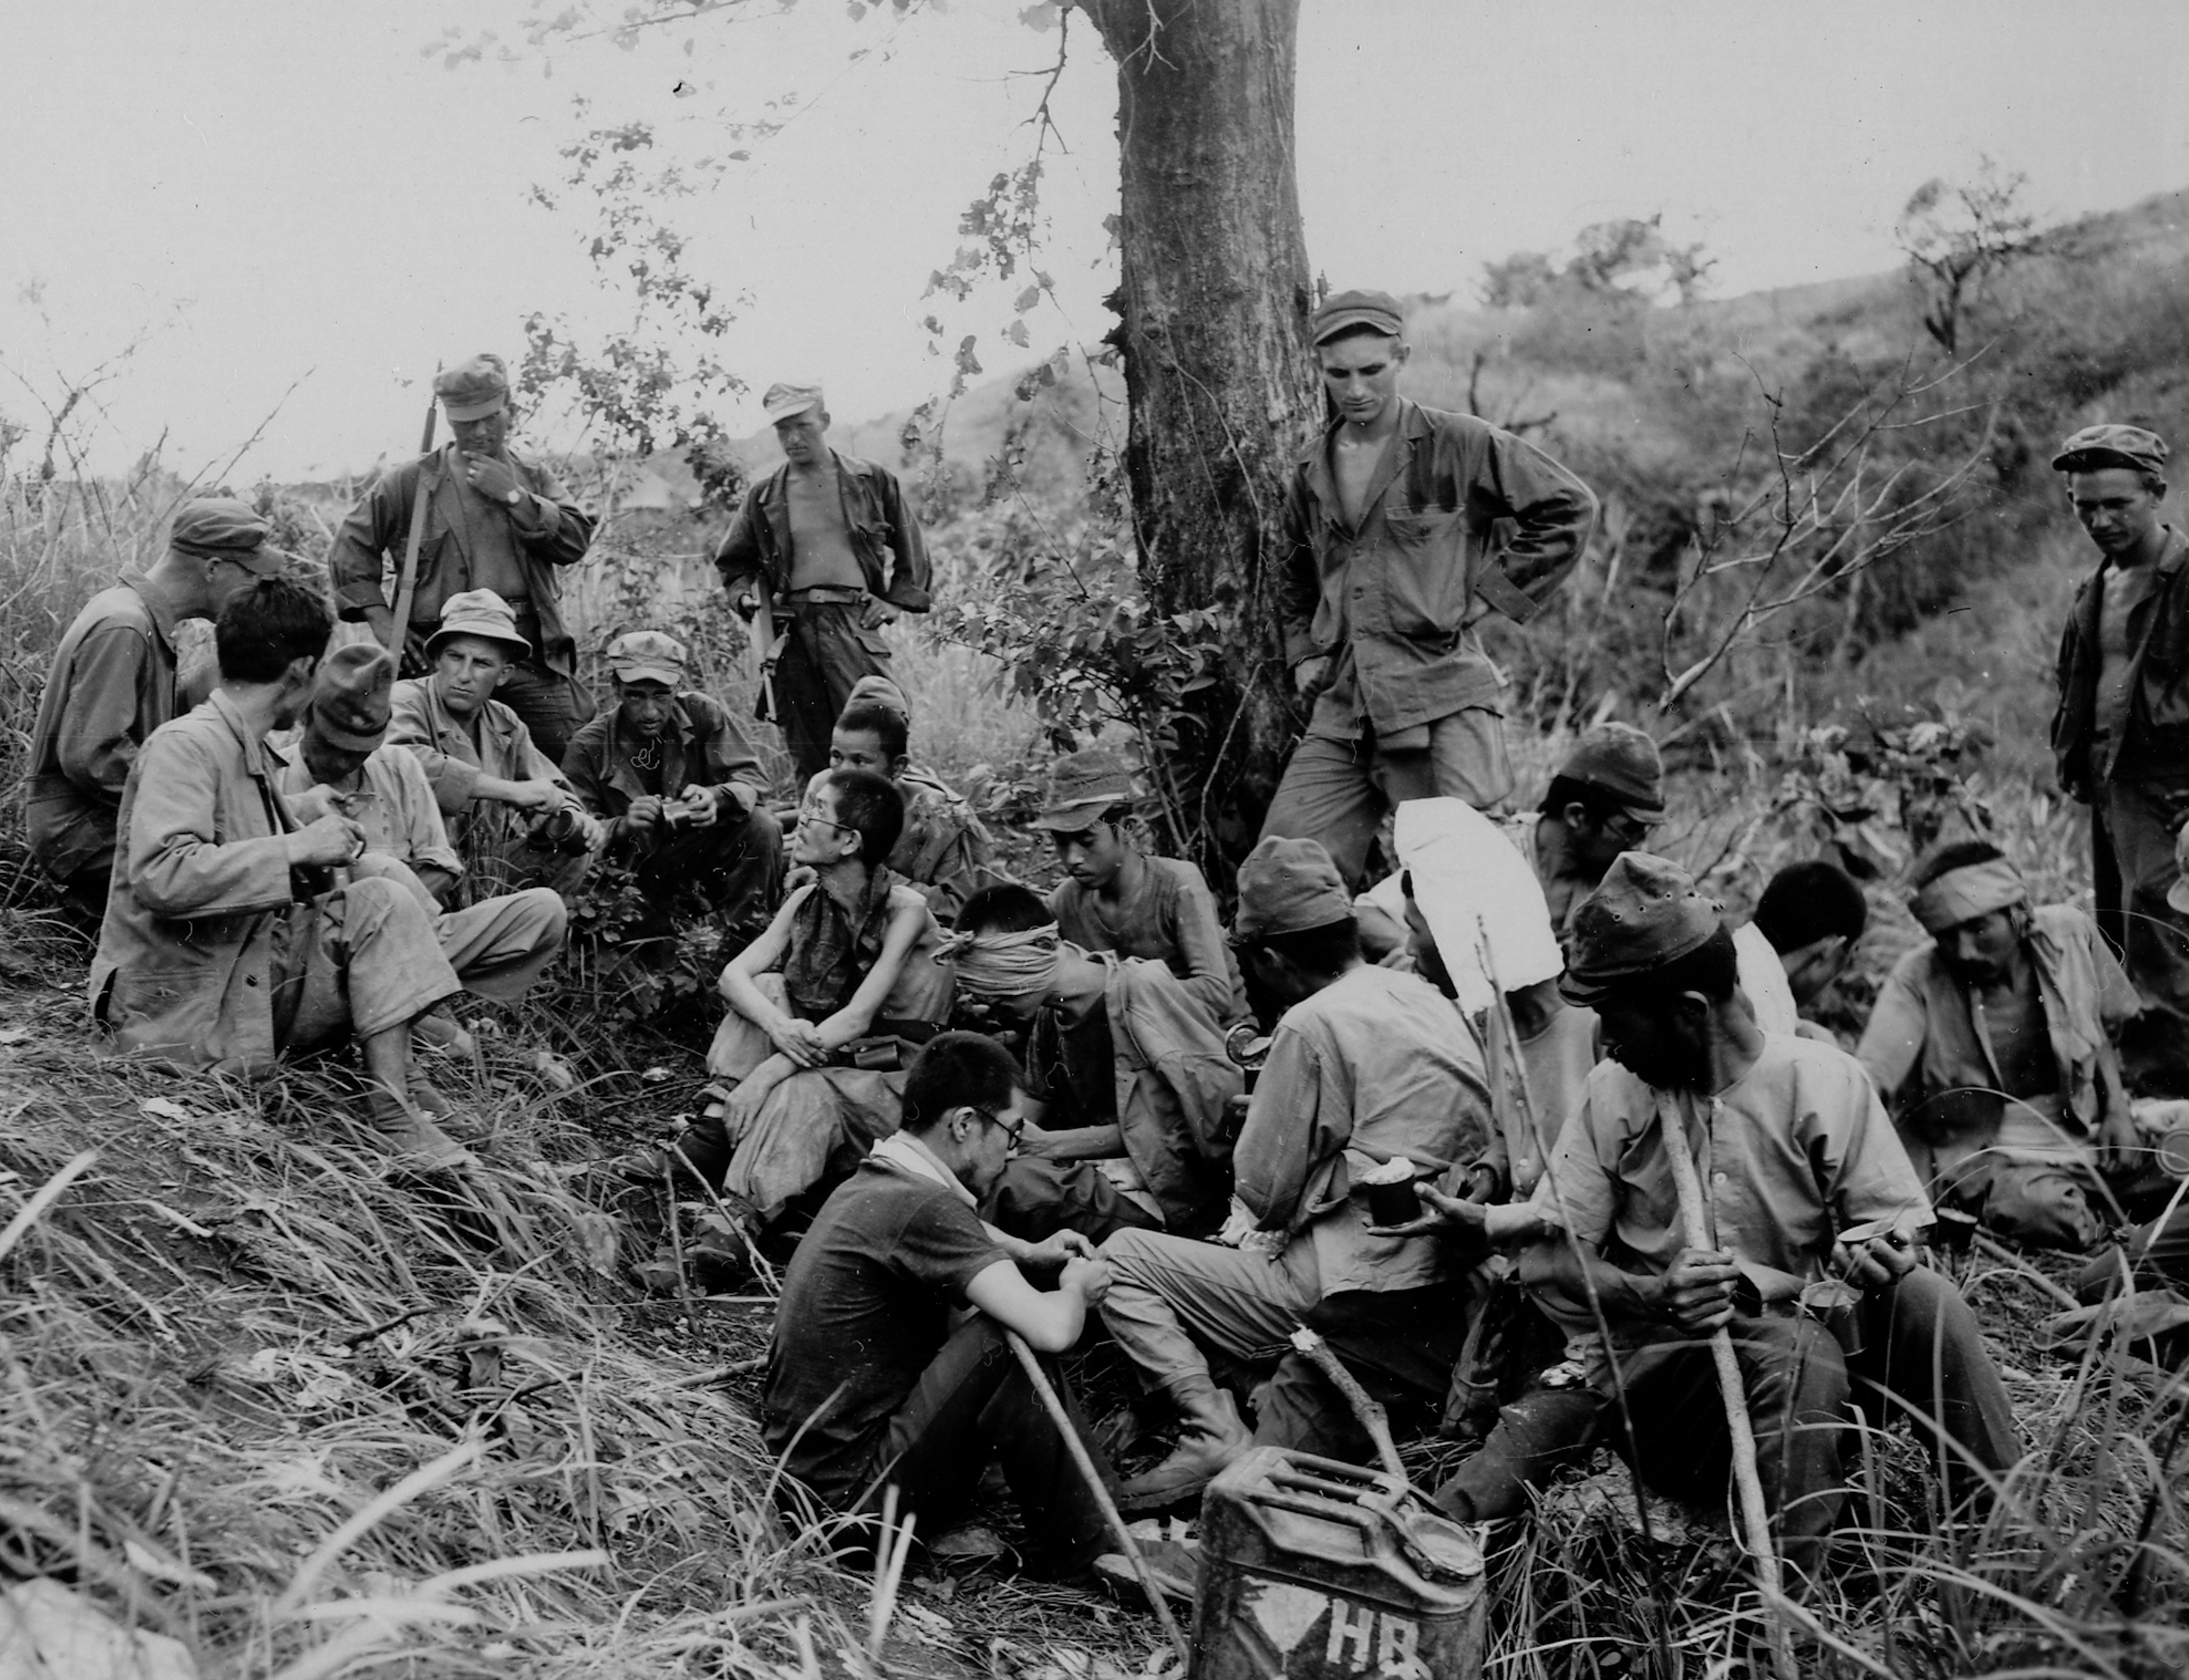 43rd inf div 103rd inf regt Ipo Dam Area Luzon Philippines 051845 (1 of 1)